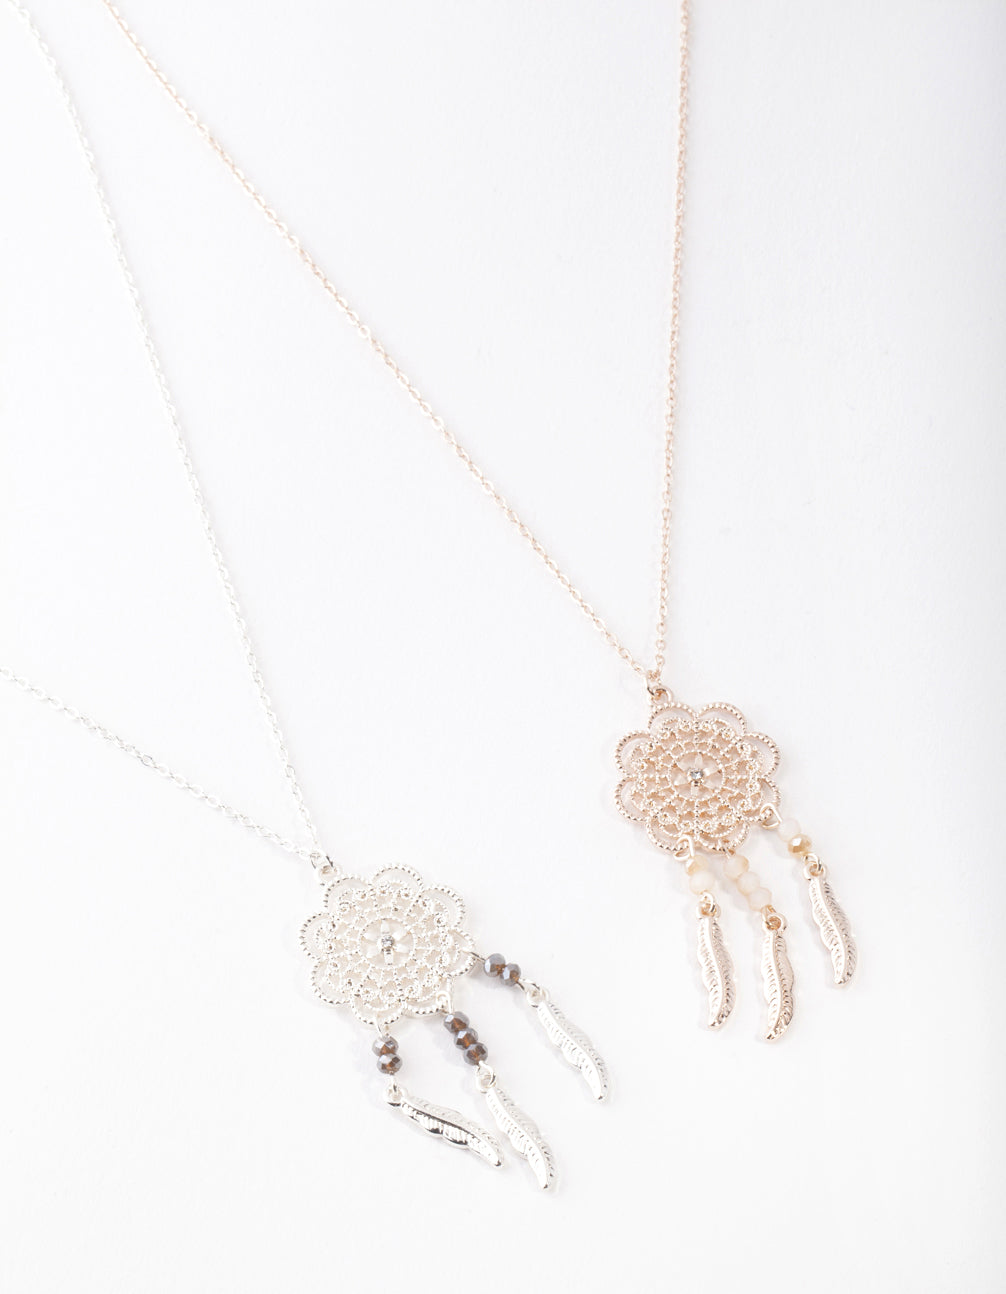 Mixed Metal Large Dreamcatcher Necklace 2 Pack